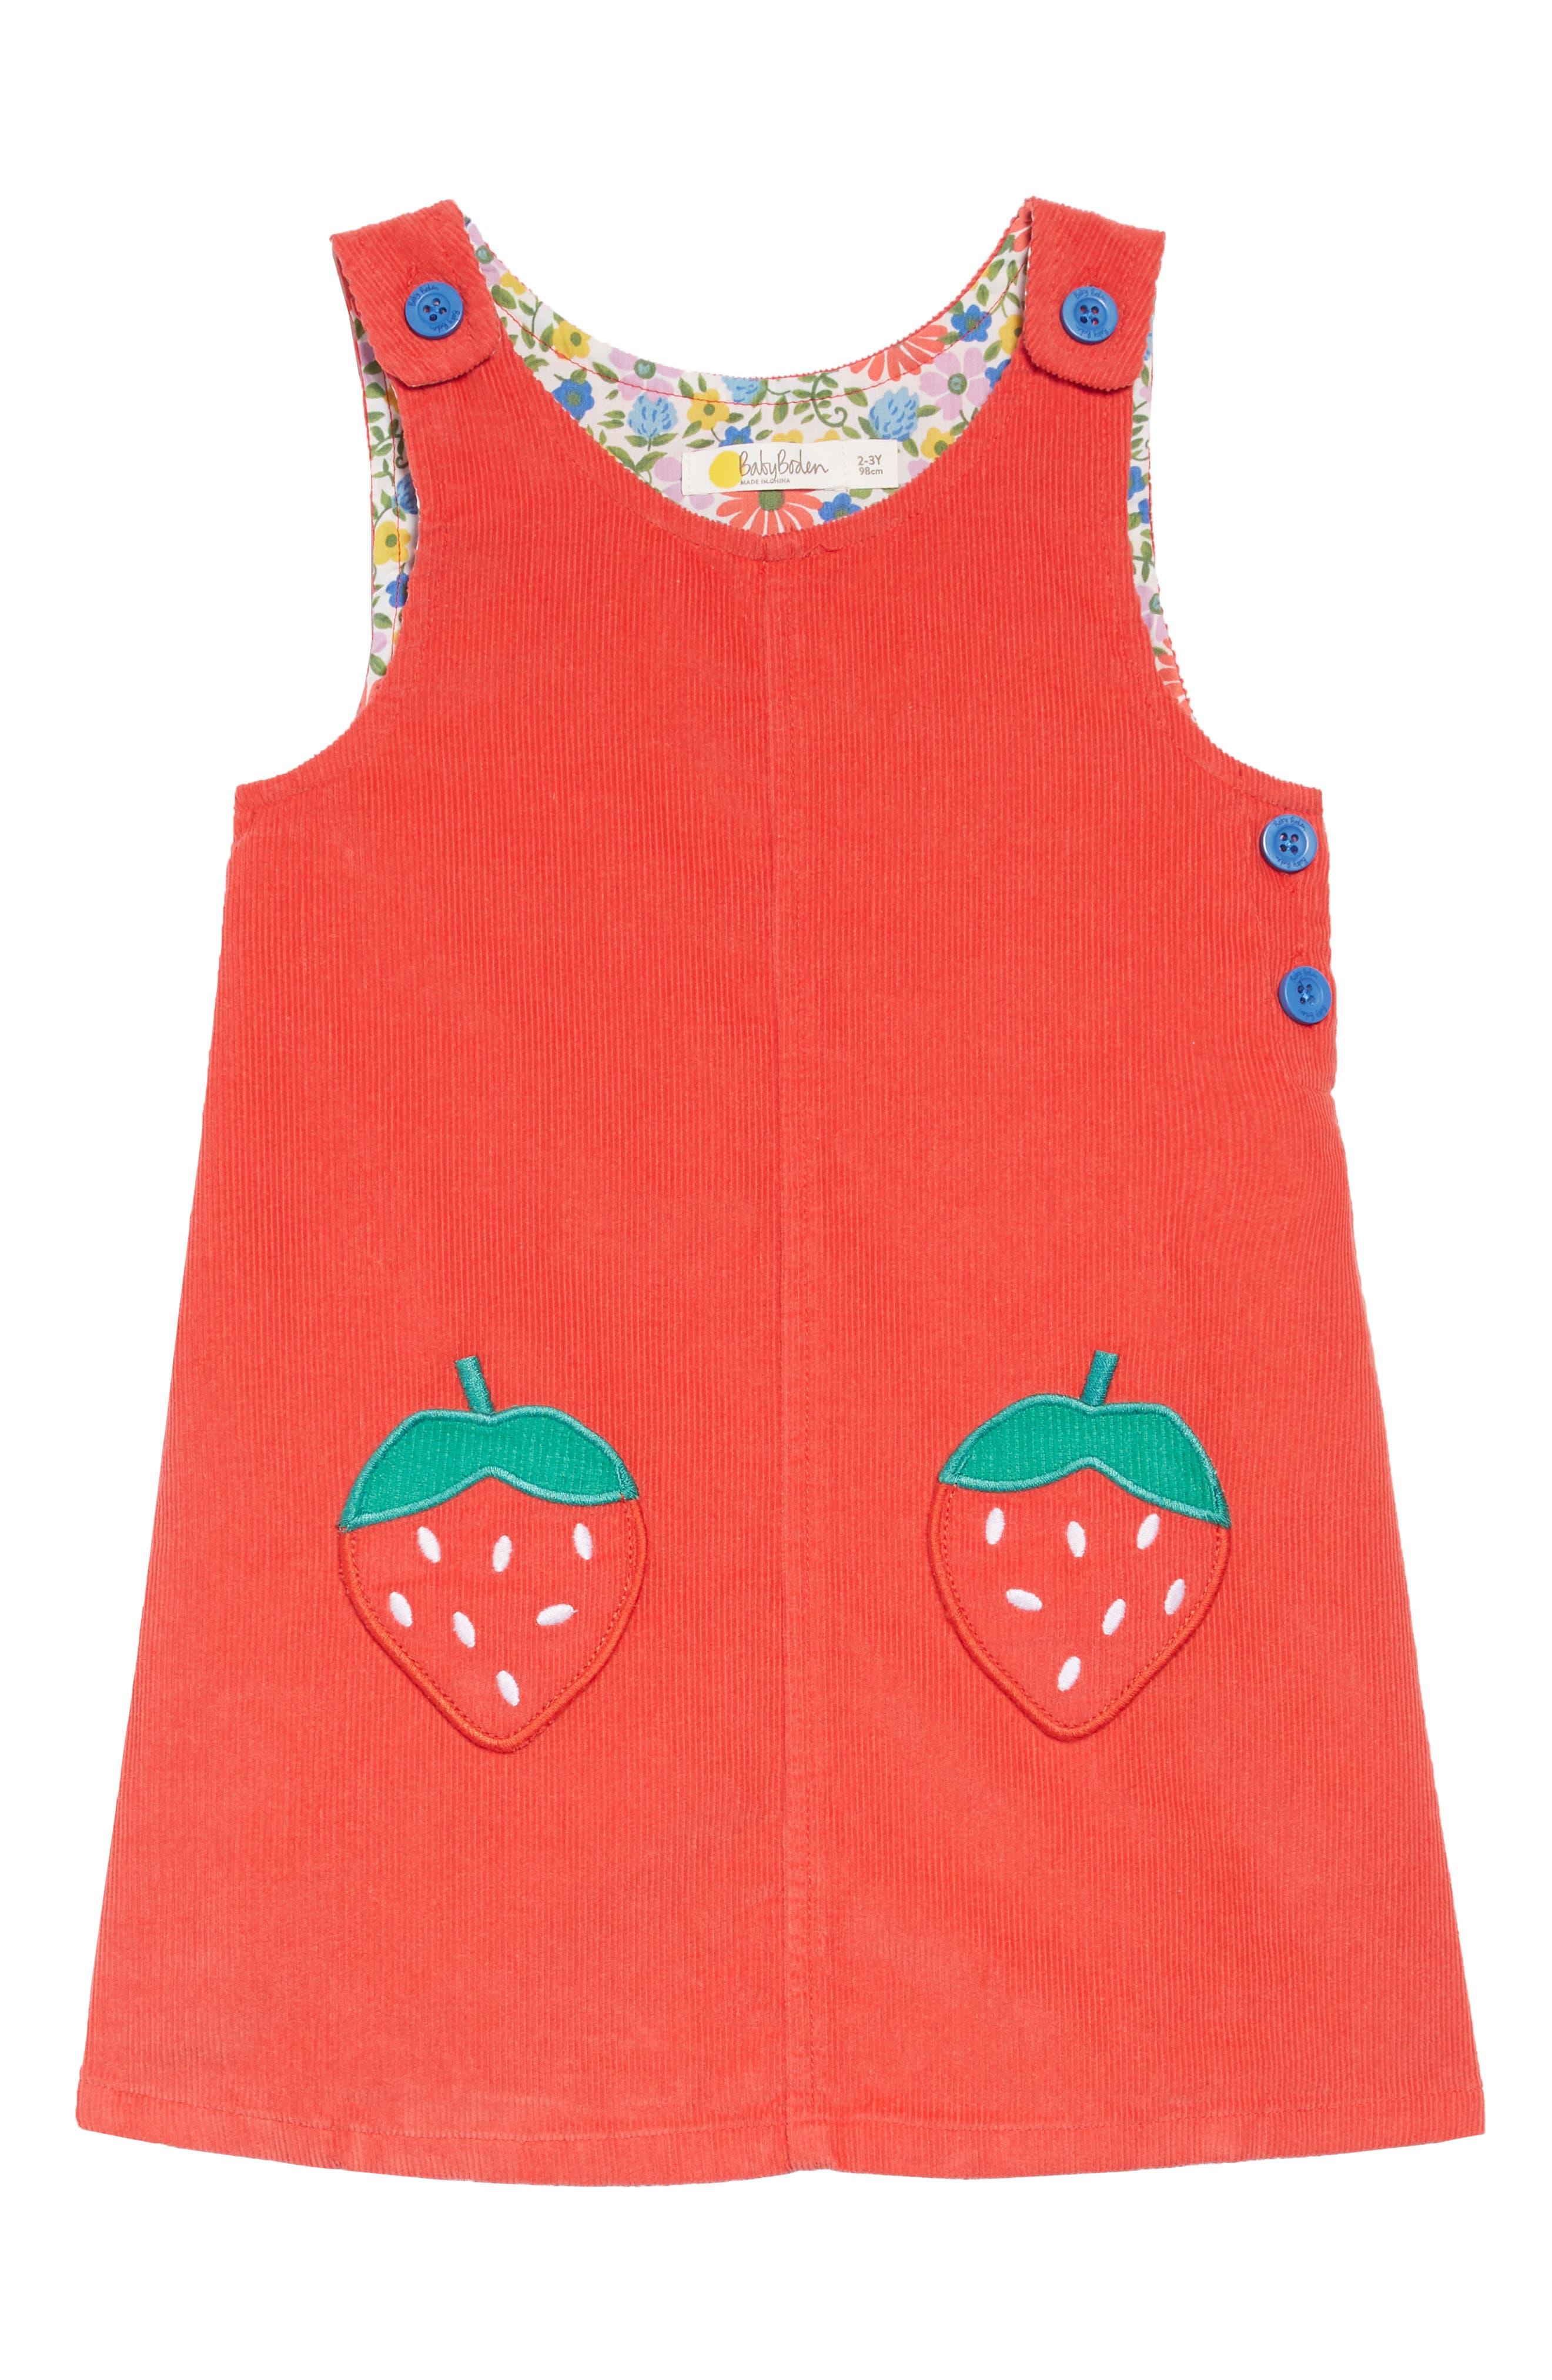 Toddler Girls Mini Boden Patch Pocket Corduroy Dress Size 23Y  Red